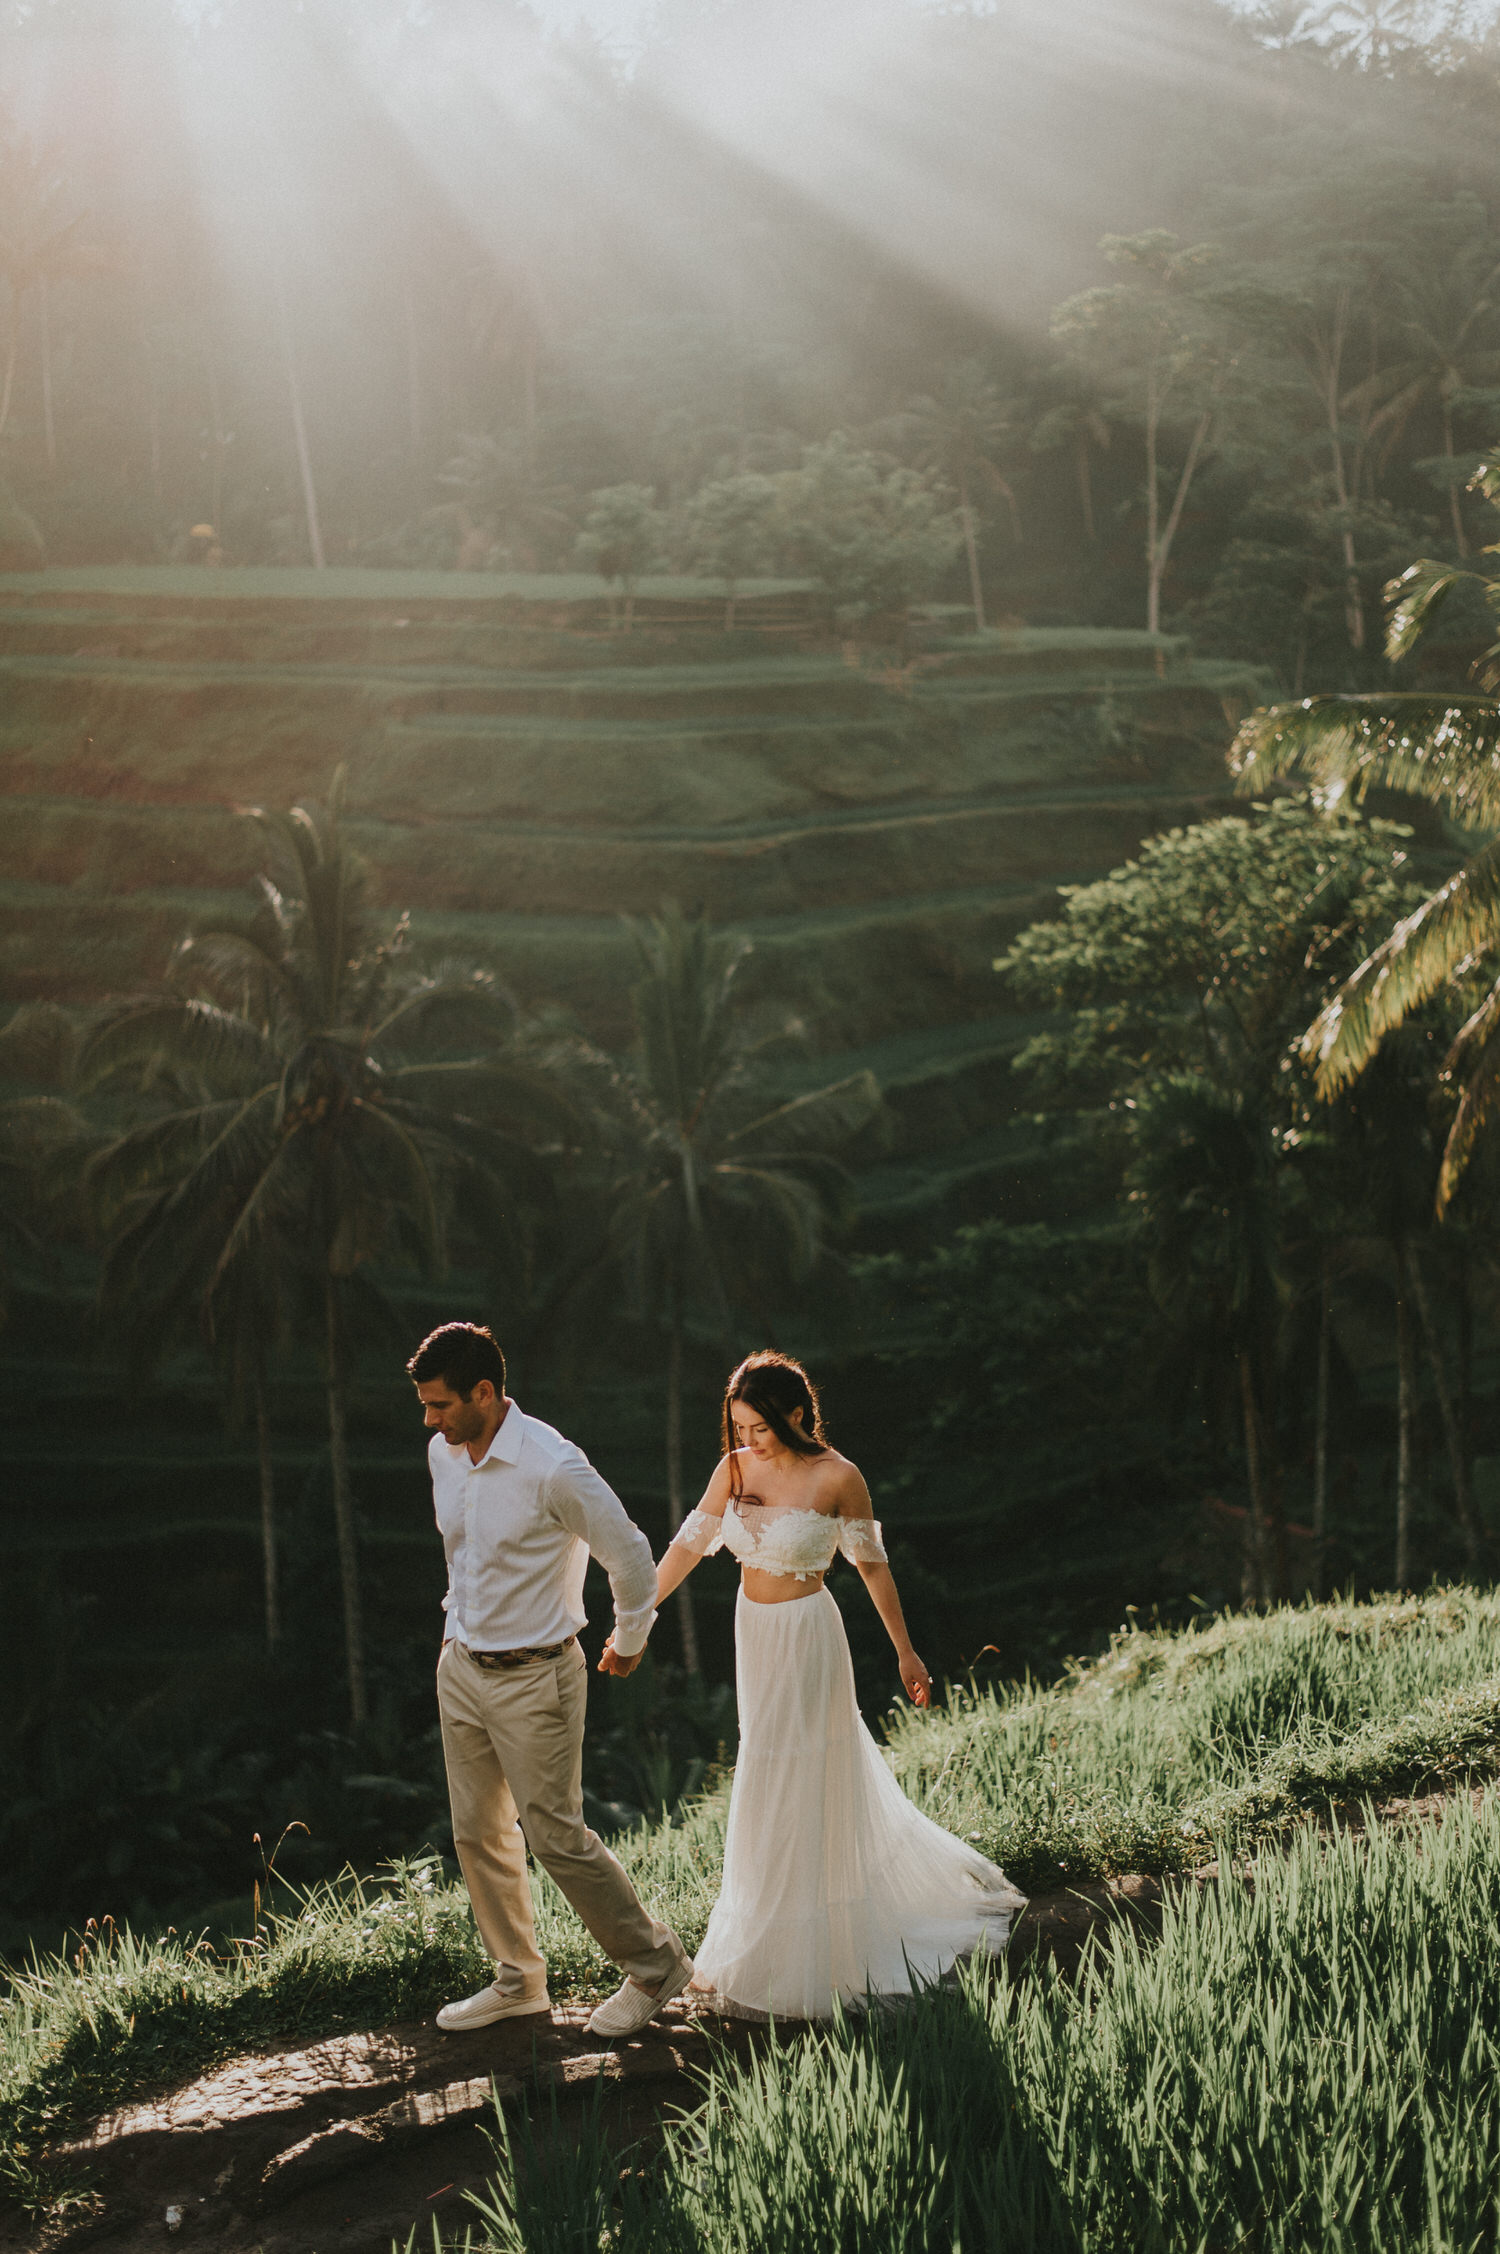 bali wedding - elopement - ubud wedding - diktatphotography - olga + Jason - 16